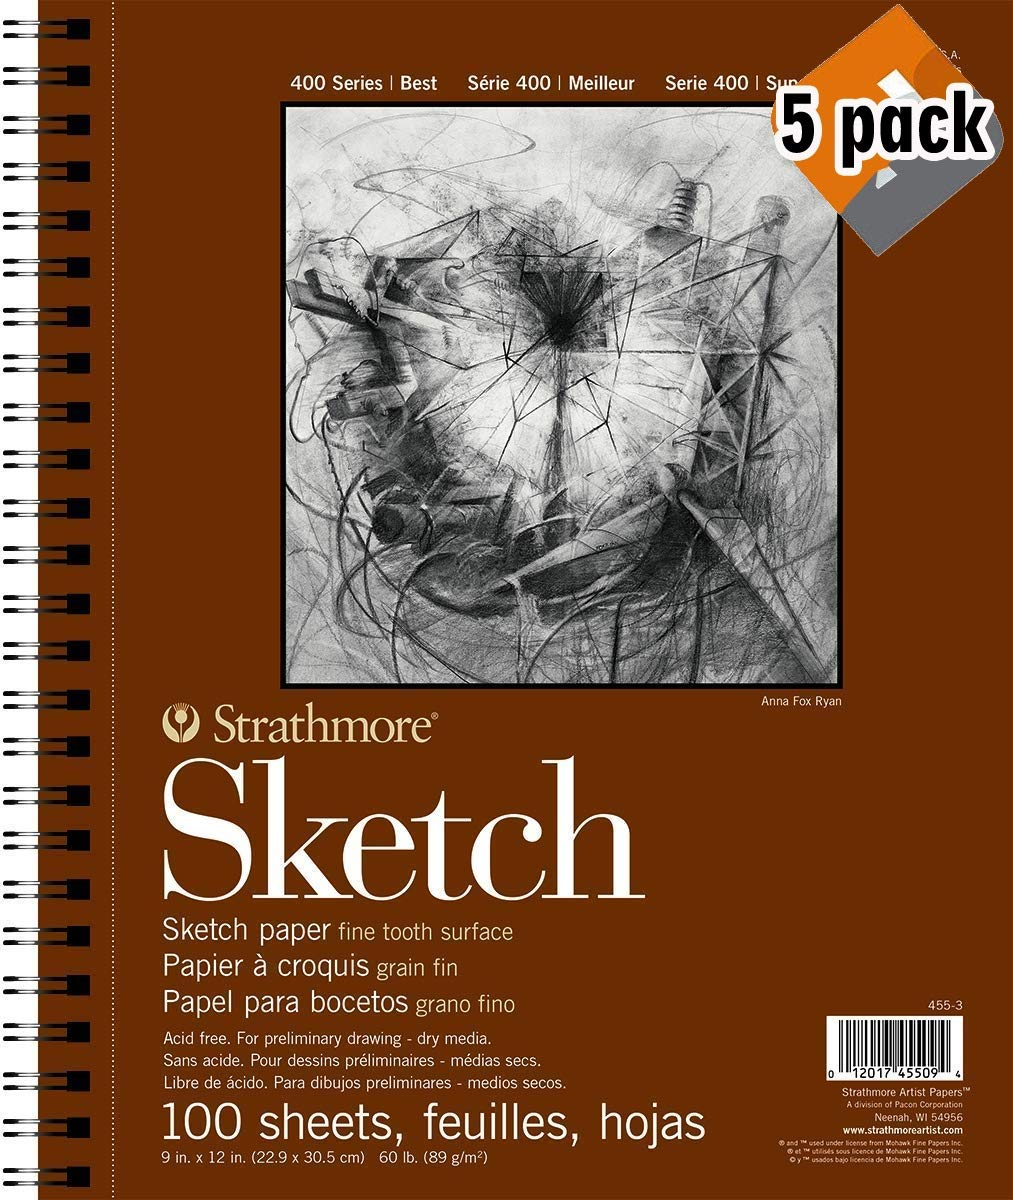 Strathmore 400 Series Sketch Pad, 9''x12'' Wire Bound, 100 Sheets - 5 Pack by Strathmore